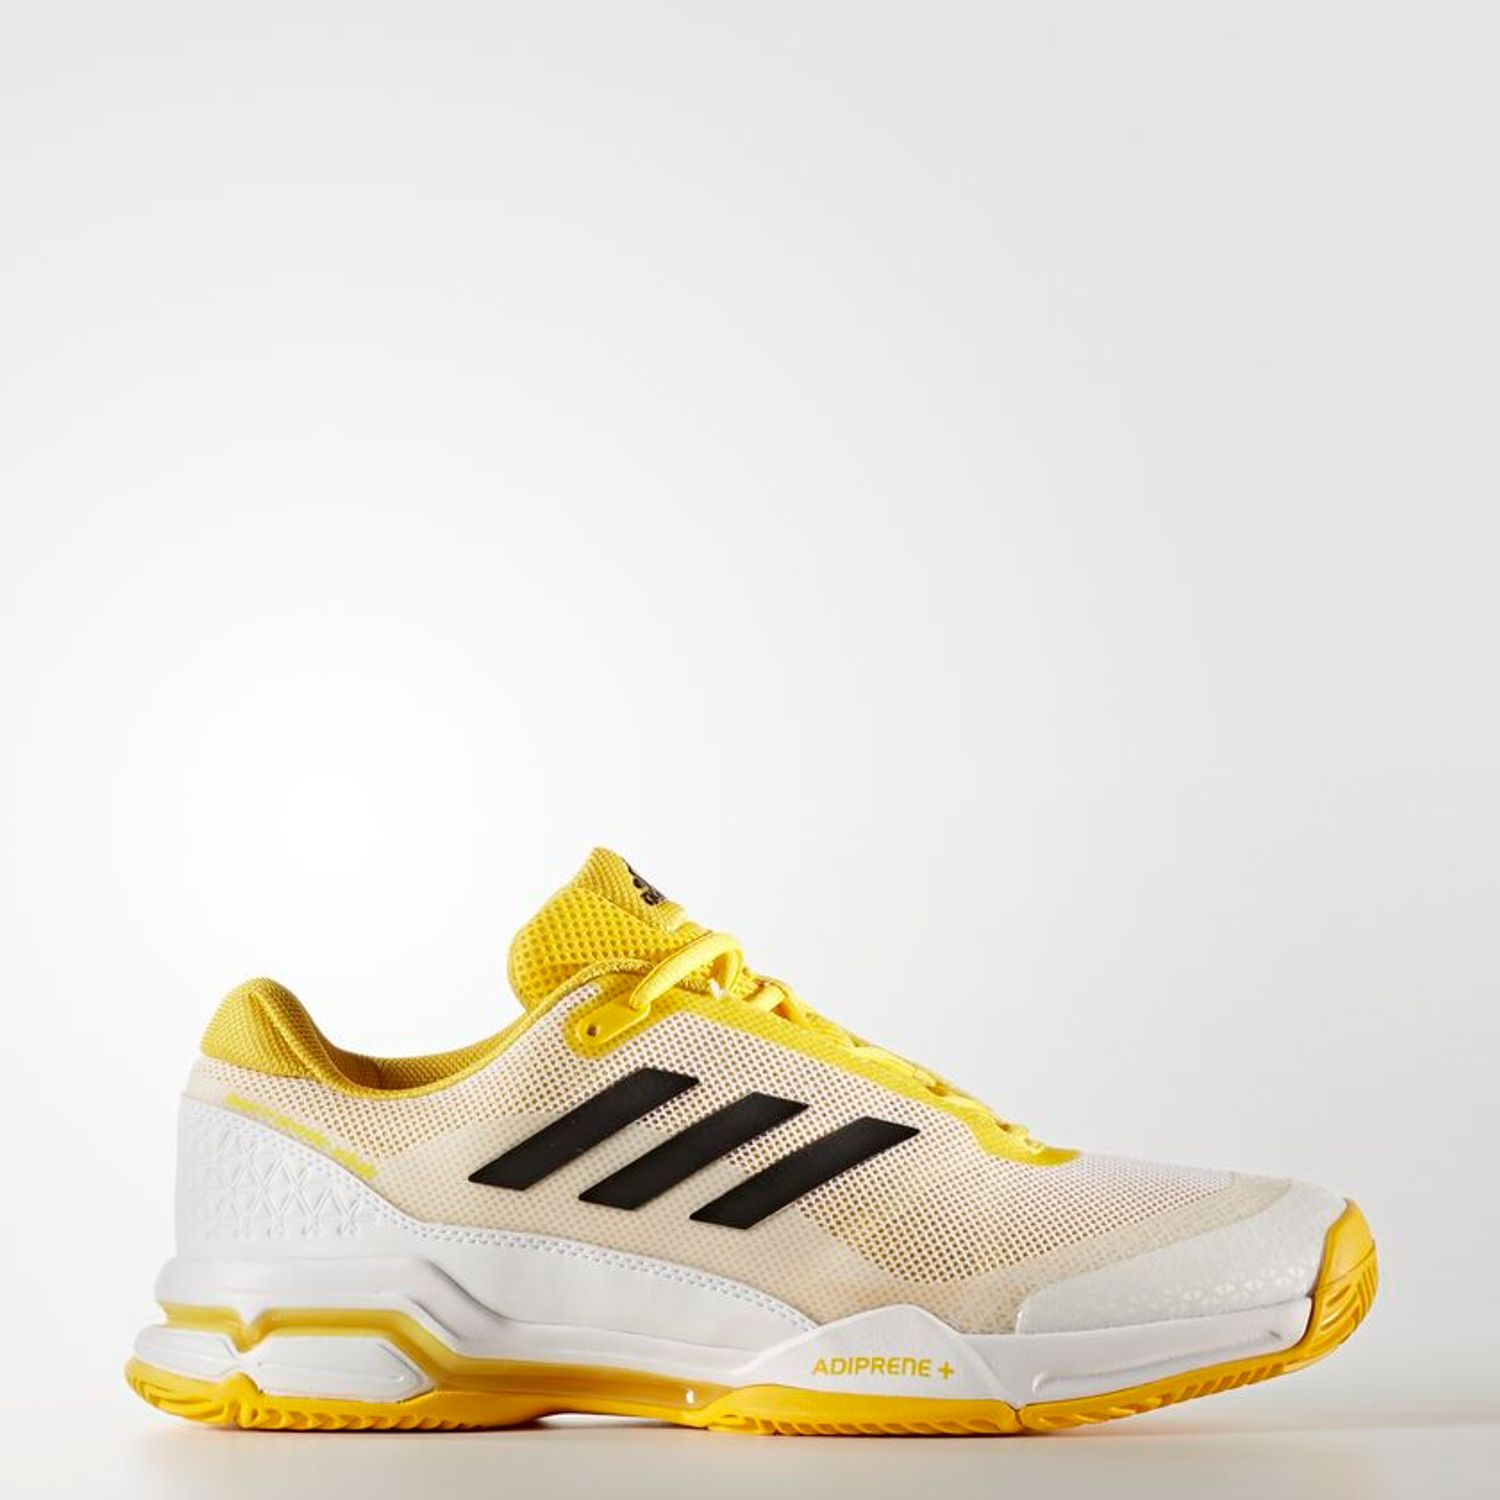 c570e702 x. sporting · HOMBRE · Zapatillas. BY1637_01_standard; BY1637_02_standard.  ADIDAS